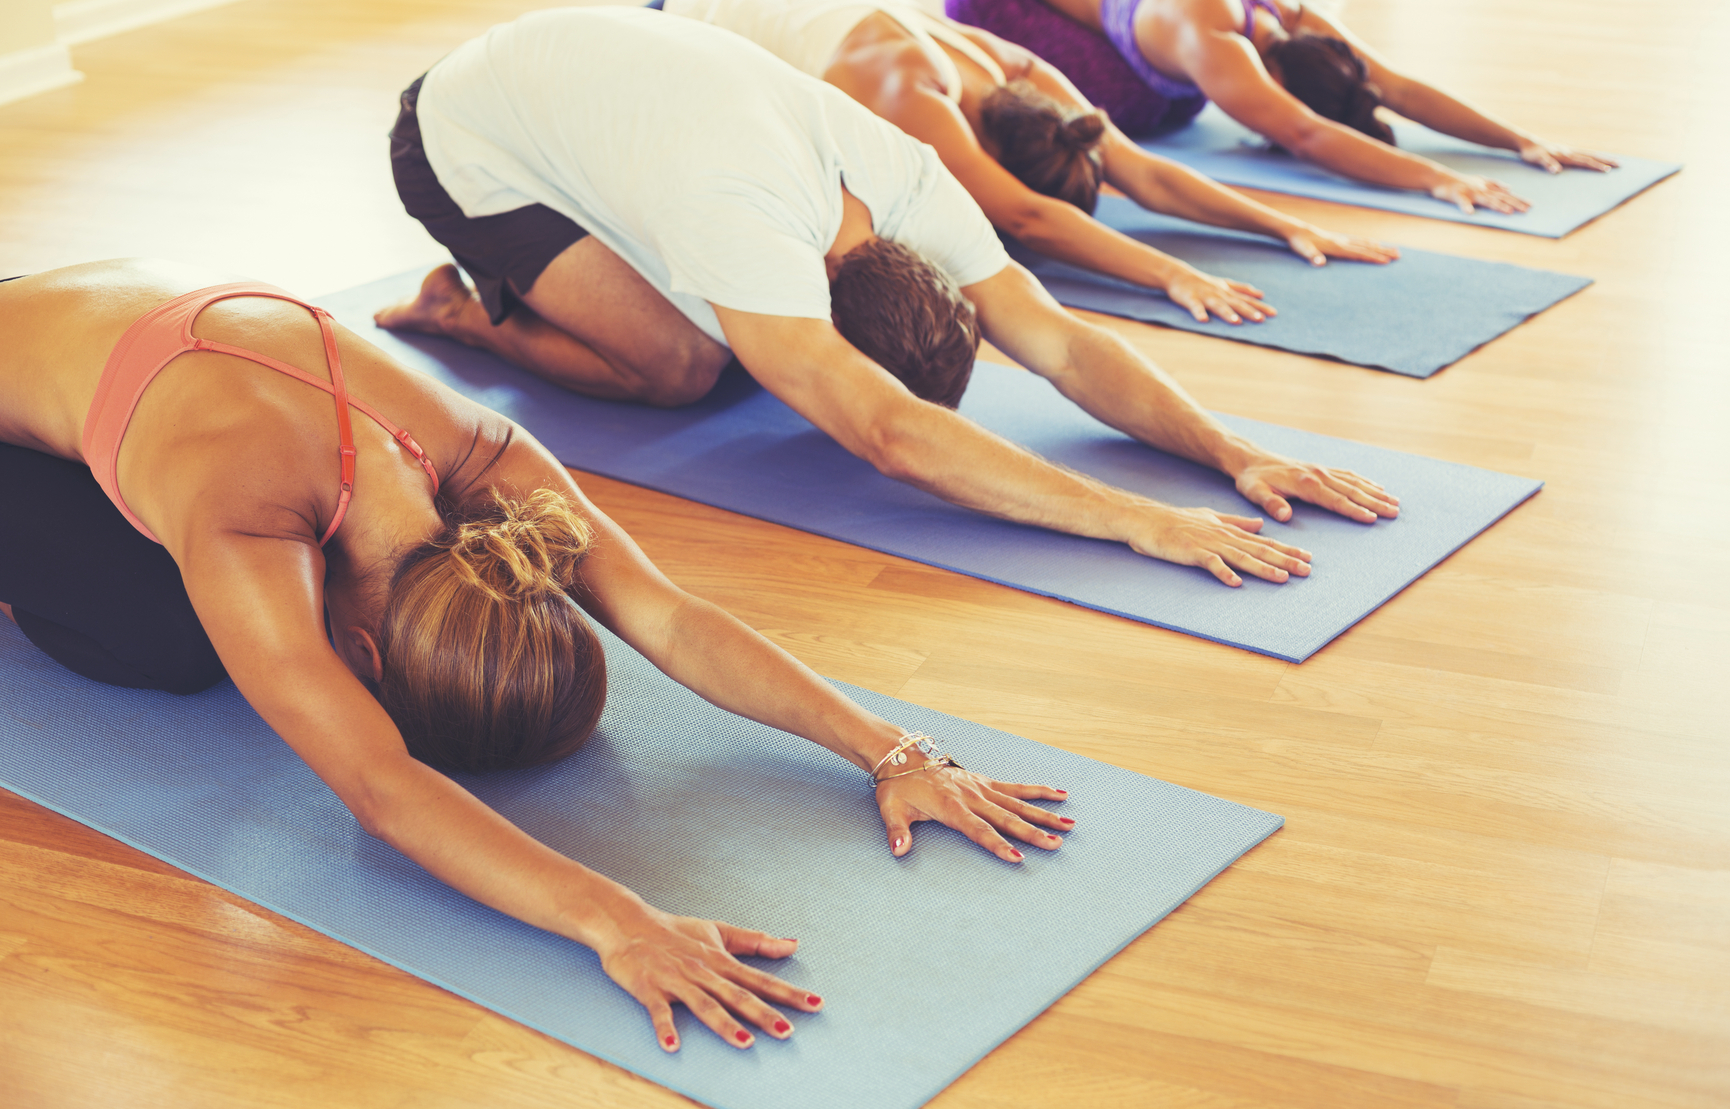 Yoga Class, Group of People Relaxing and Doing Yoga. Childs Pose. Wellness and Healthy Lifestyle.